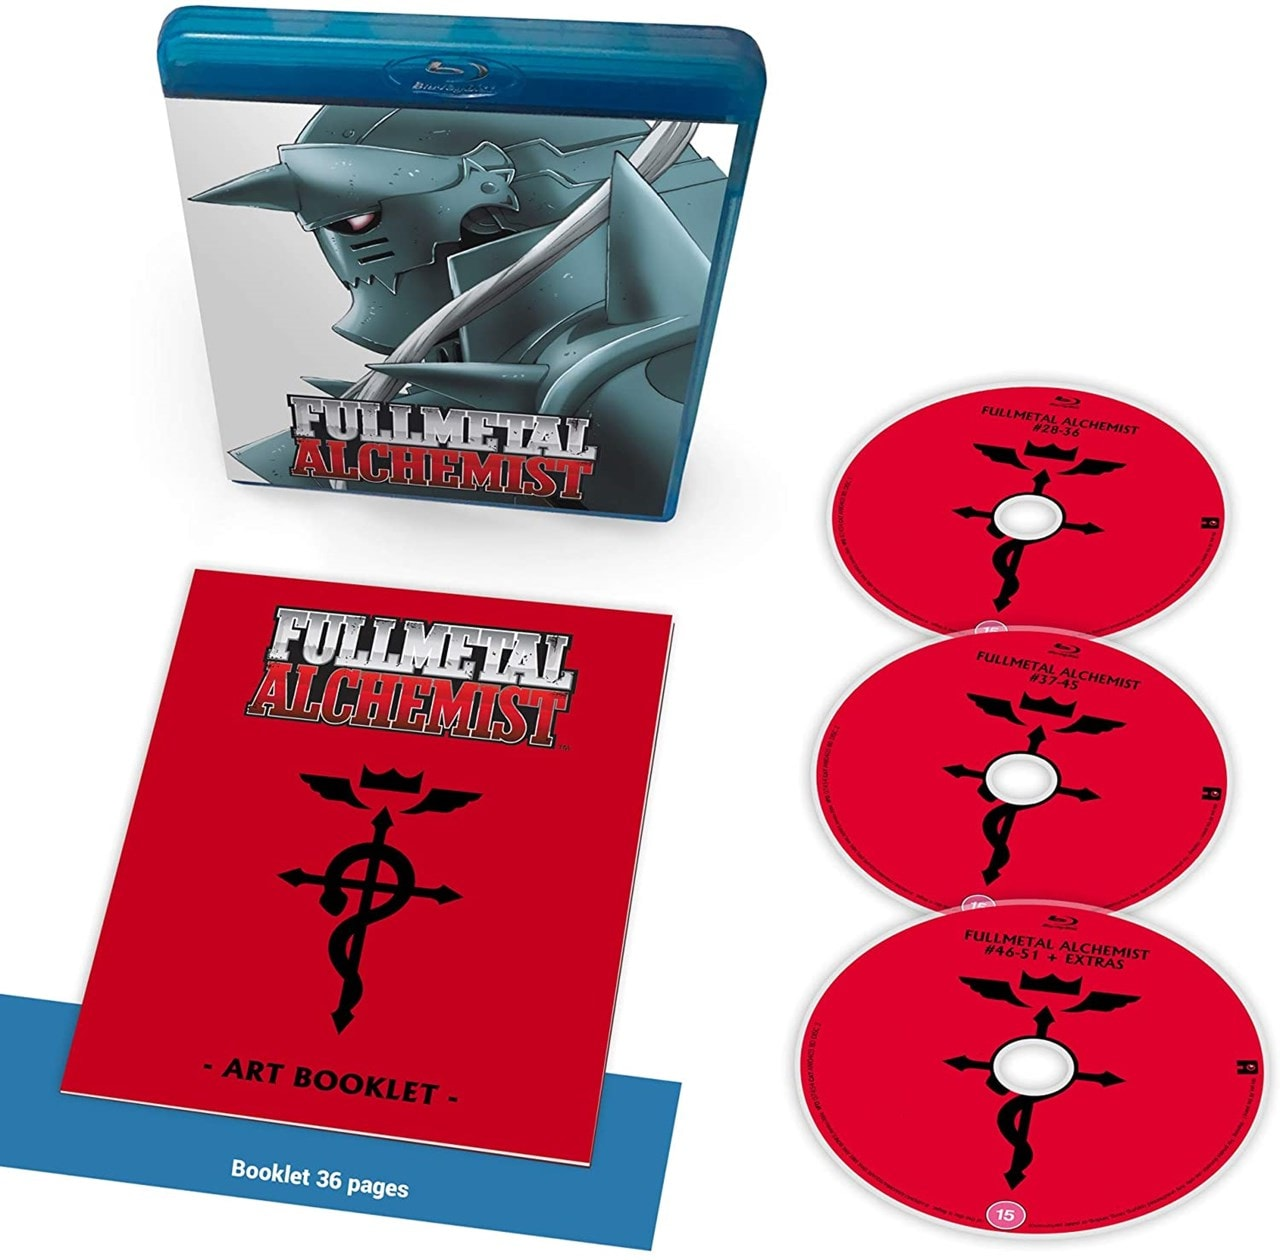 Fullmetal Alchemist: Part 2 Limited Collector's Edition - 1